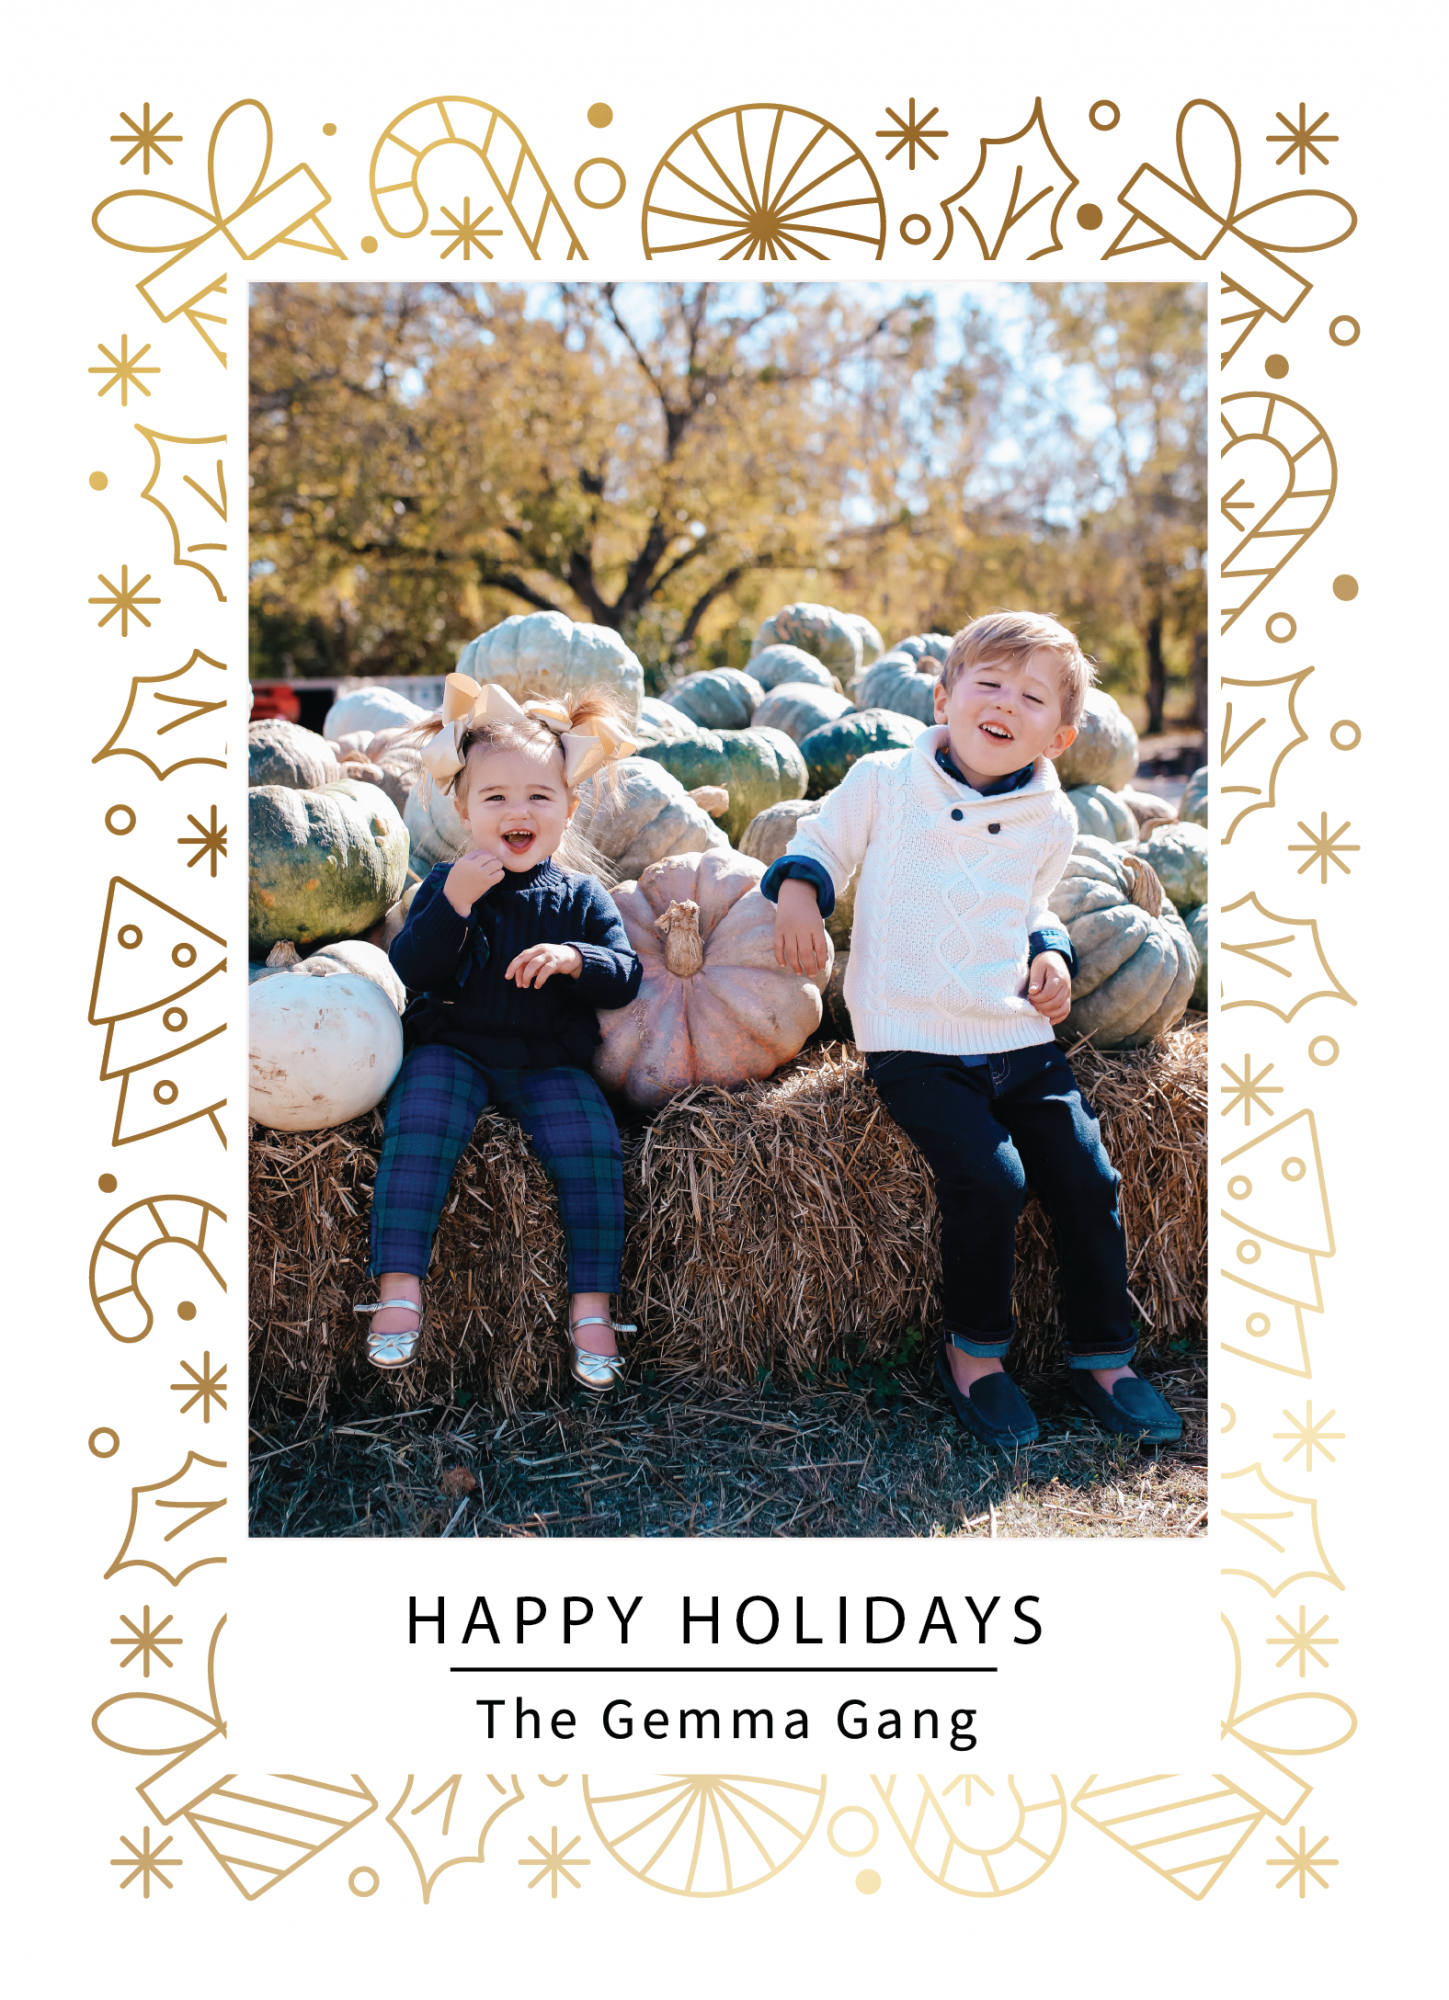 janie and jack kids clothing fall 2020, kids fall fashion 2020, the sweetest thing blog17 | Janie and Jack Kids Clothing by popular US fashion blog, The Sweetest Thing: image of two kids sitting next to a pile of pumpkins and wearing a Janie and Jack PLAID POPLIN SHIRT, Janie and Jack SHAWL COLLAR PULLOVER, Janie and Jack SLIM SELVEDGE JEAN IN MOONLIGHT INDIGO WASH, Janie and Jack LEATHER TRIM BELT, Janie and Jack ARGYLE SOCK, Janie and Jack SUEDE DRIVING SHOE, Janie and Jack PEPLUM BOW SWEATER, Janie and Jack PLAID PONTE BUTTON CUFF PANT, and Janie and Jack METALLIC BOW FLAT.